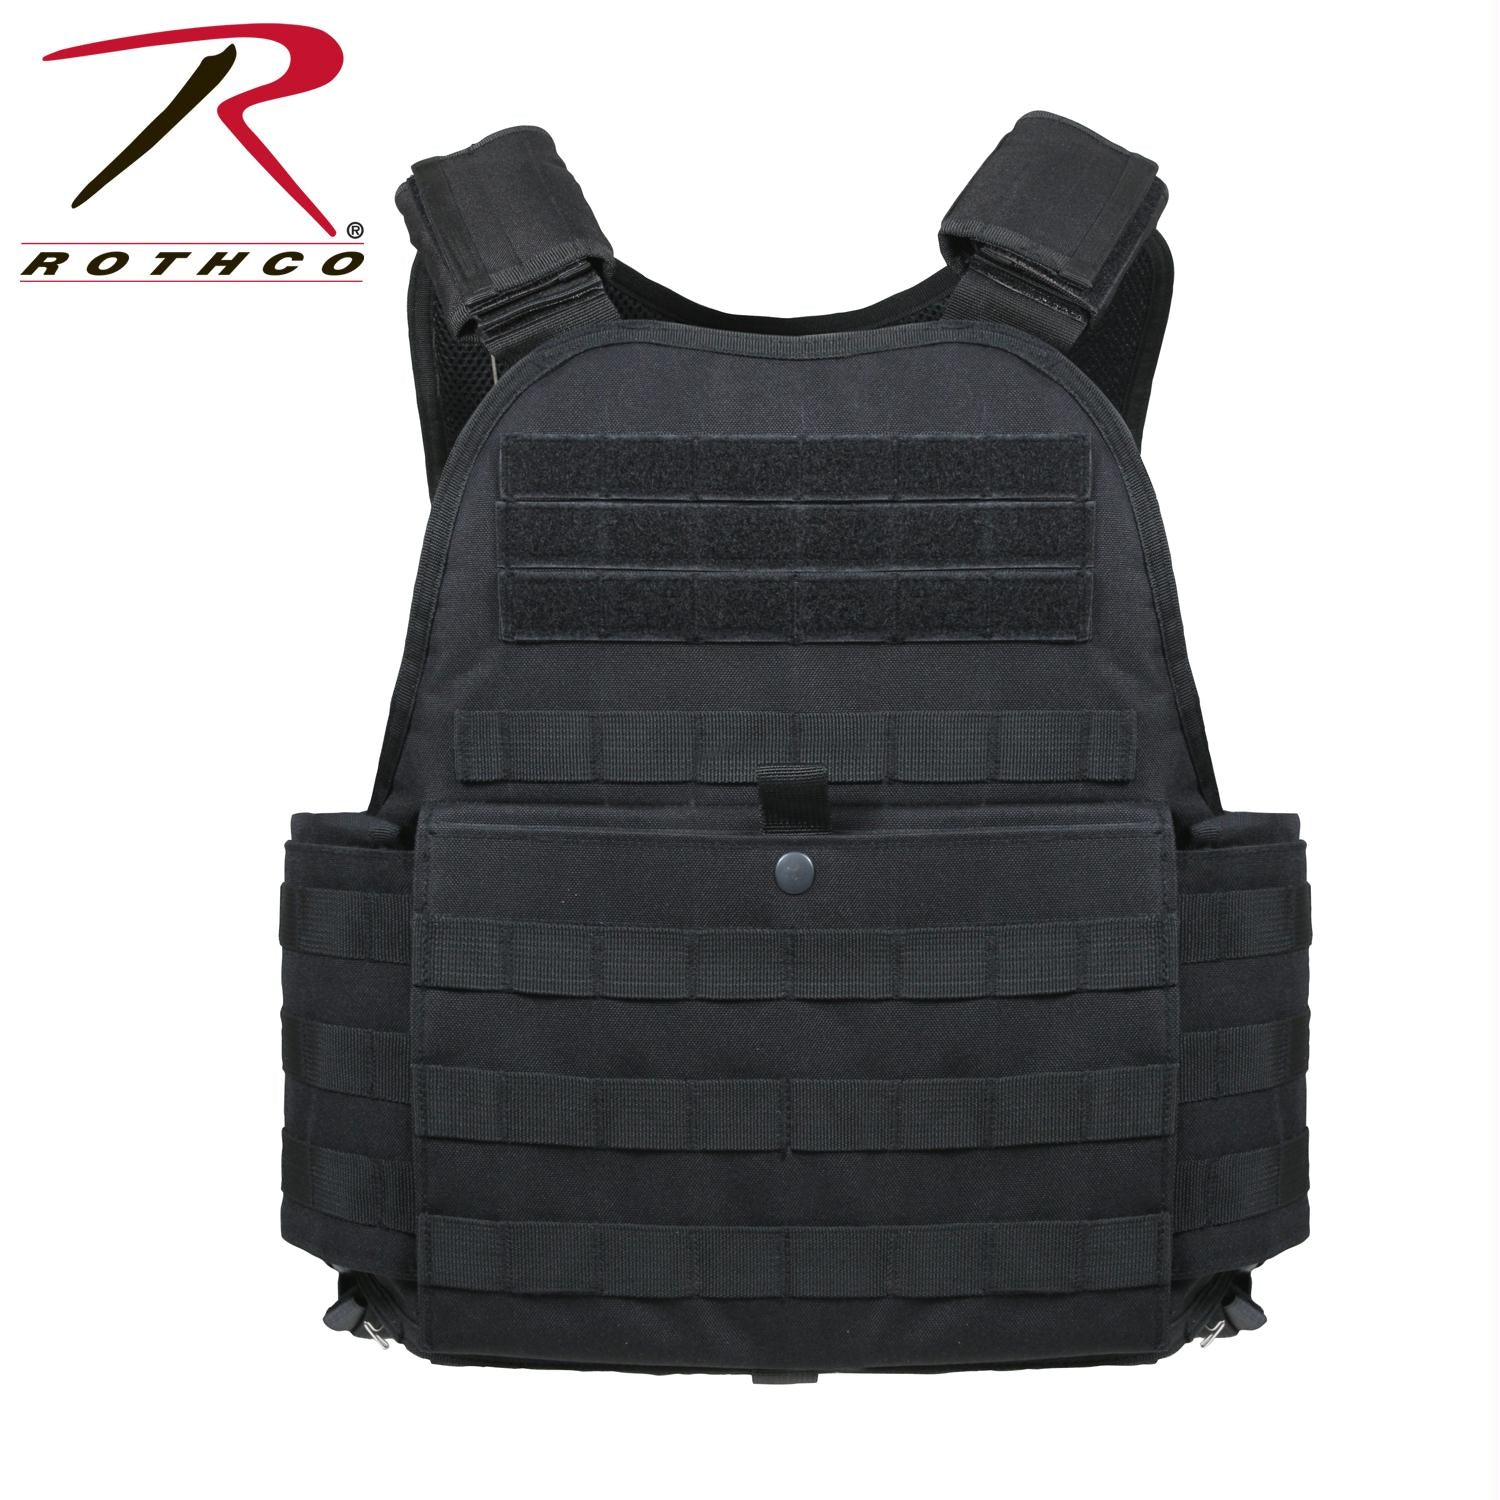 Rothco MOLLE Plate Carrier Vest - Black / Oversized